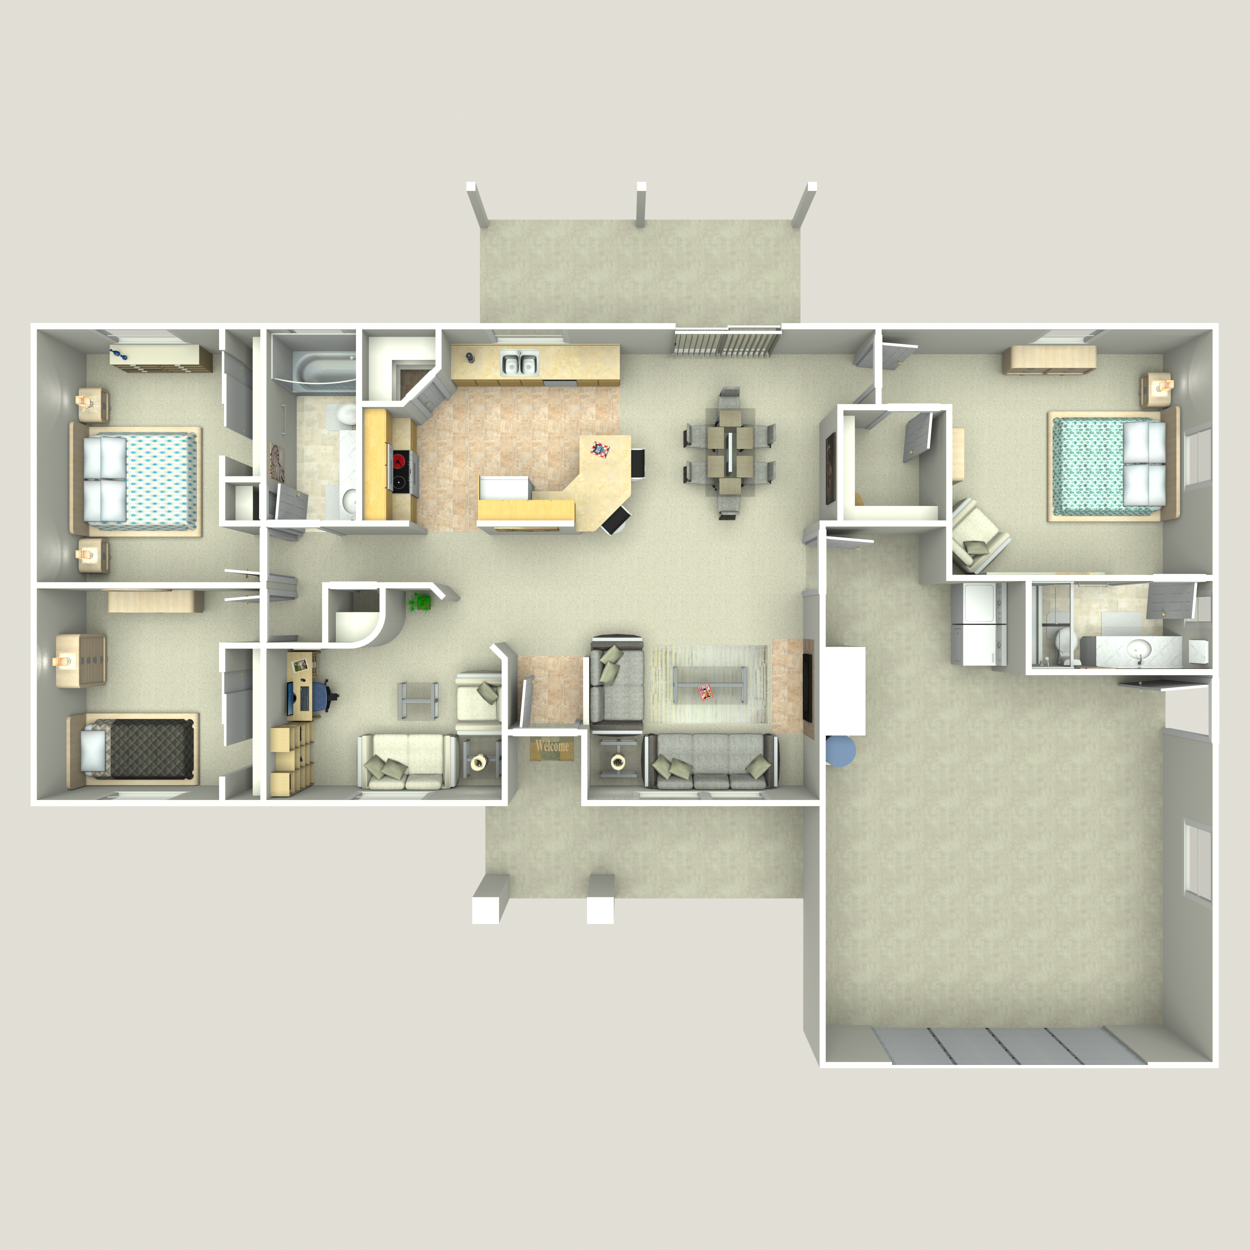 Floor plan image of Heritage II